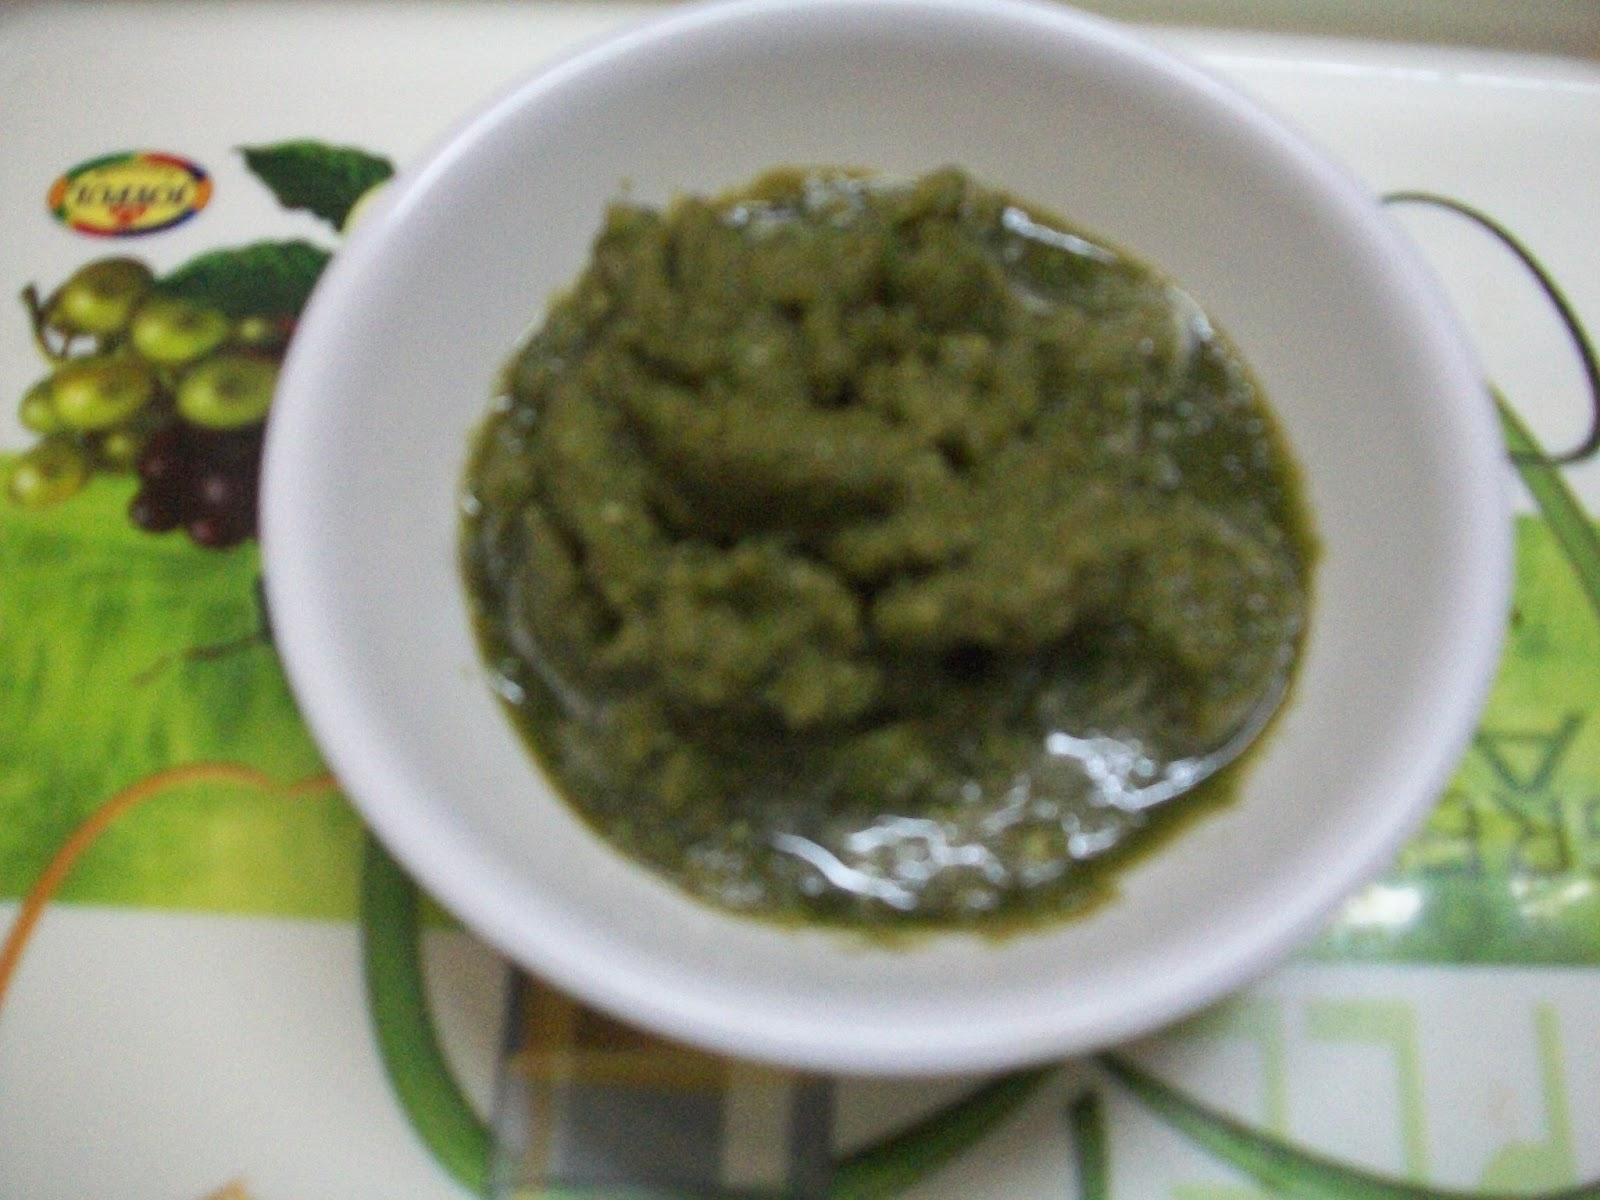 http://lunchrecipe.blogspot.in/2013/07/how-to-make-turai-chutney-recipe-turai.html